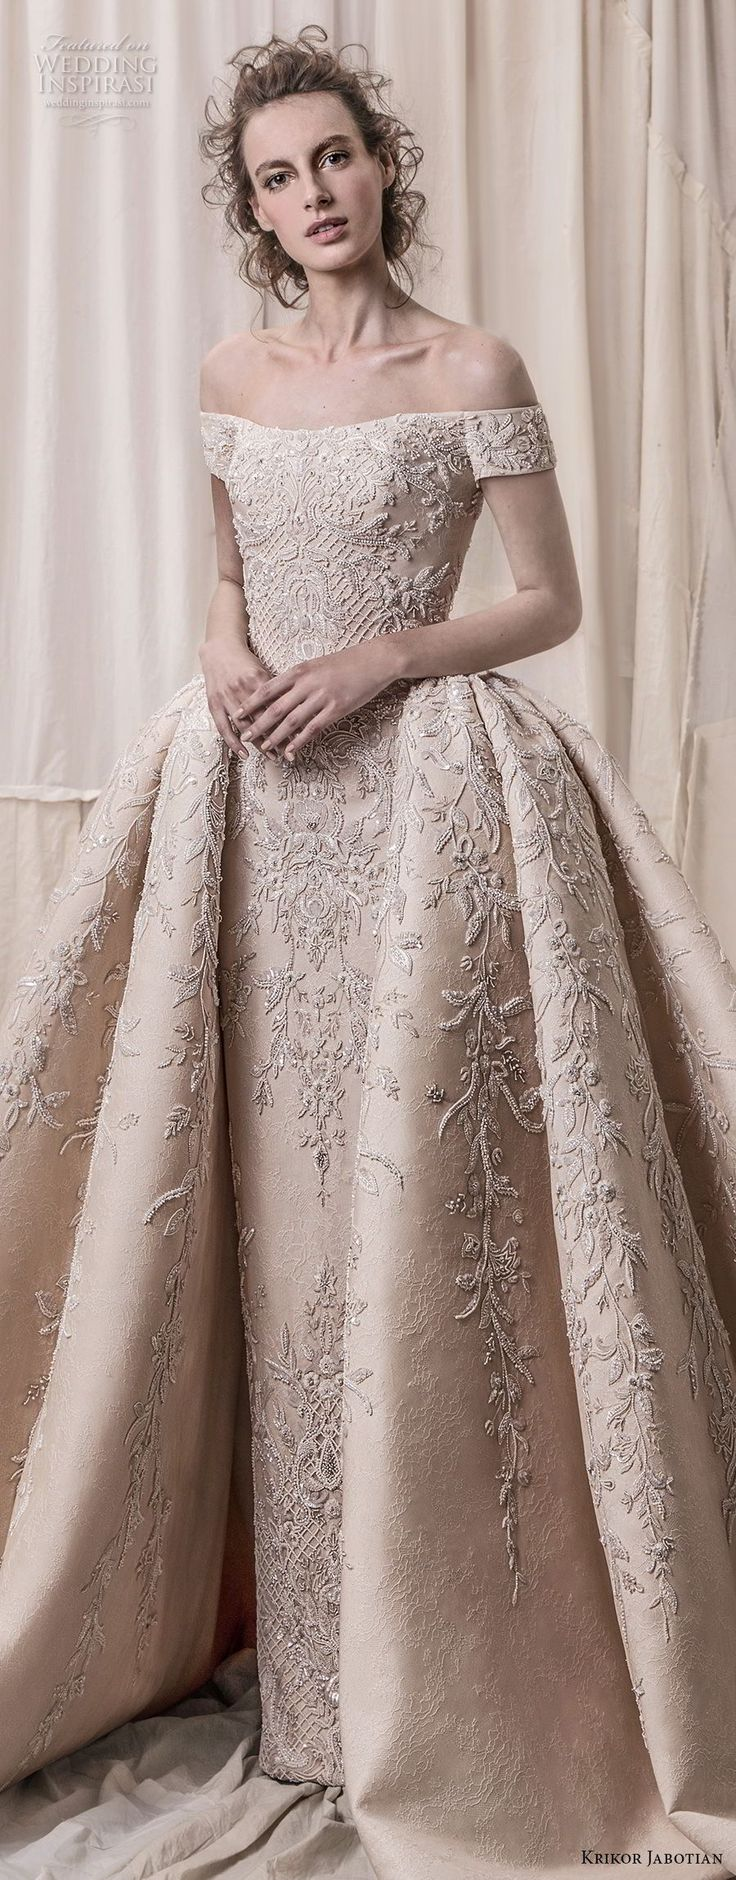 krikor jabotian spring 2018 bridal off the shoulder straight across neck full embellishment champagne gold princess ball gown a  line wedding dress royal train (06) lv -- Krikor Jabotian Spring 2018 Wedding Dresses